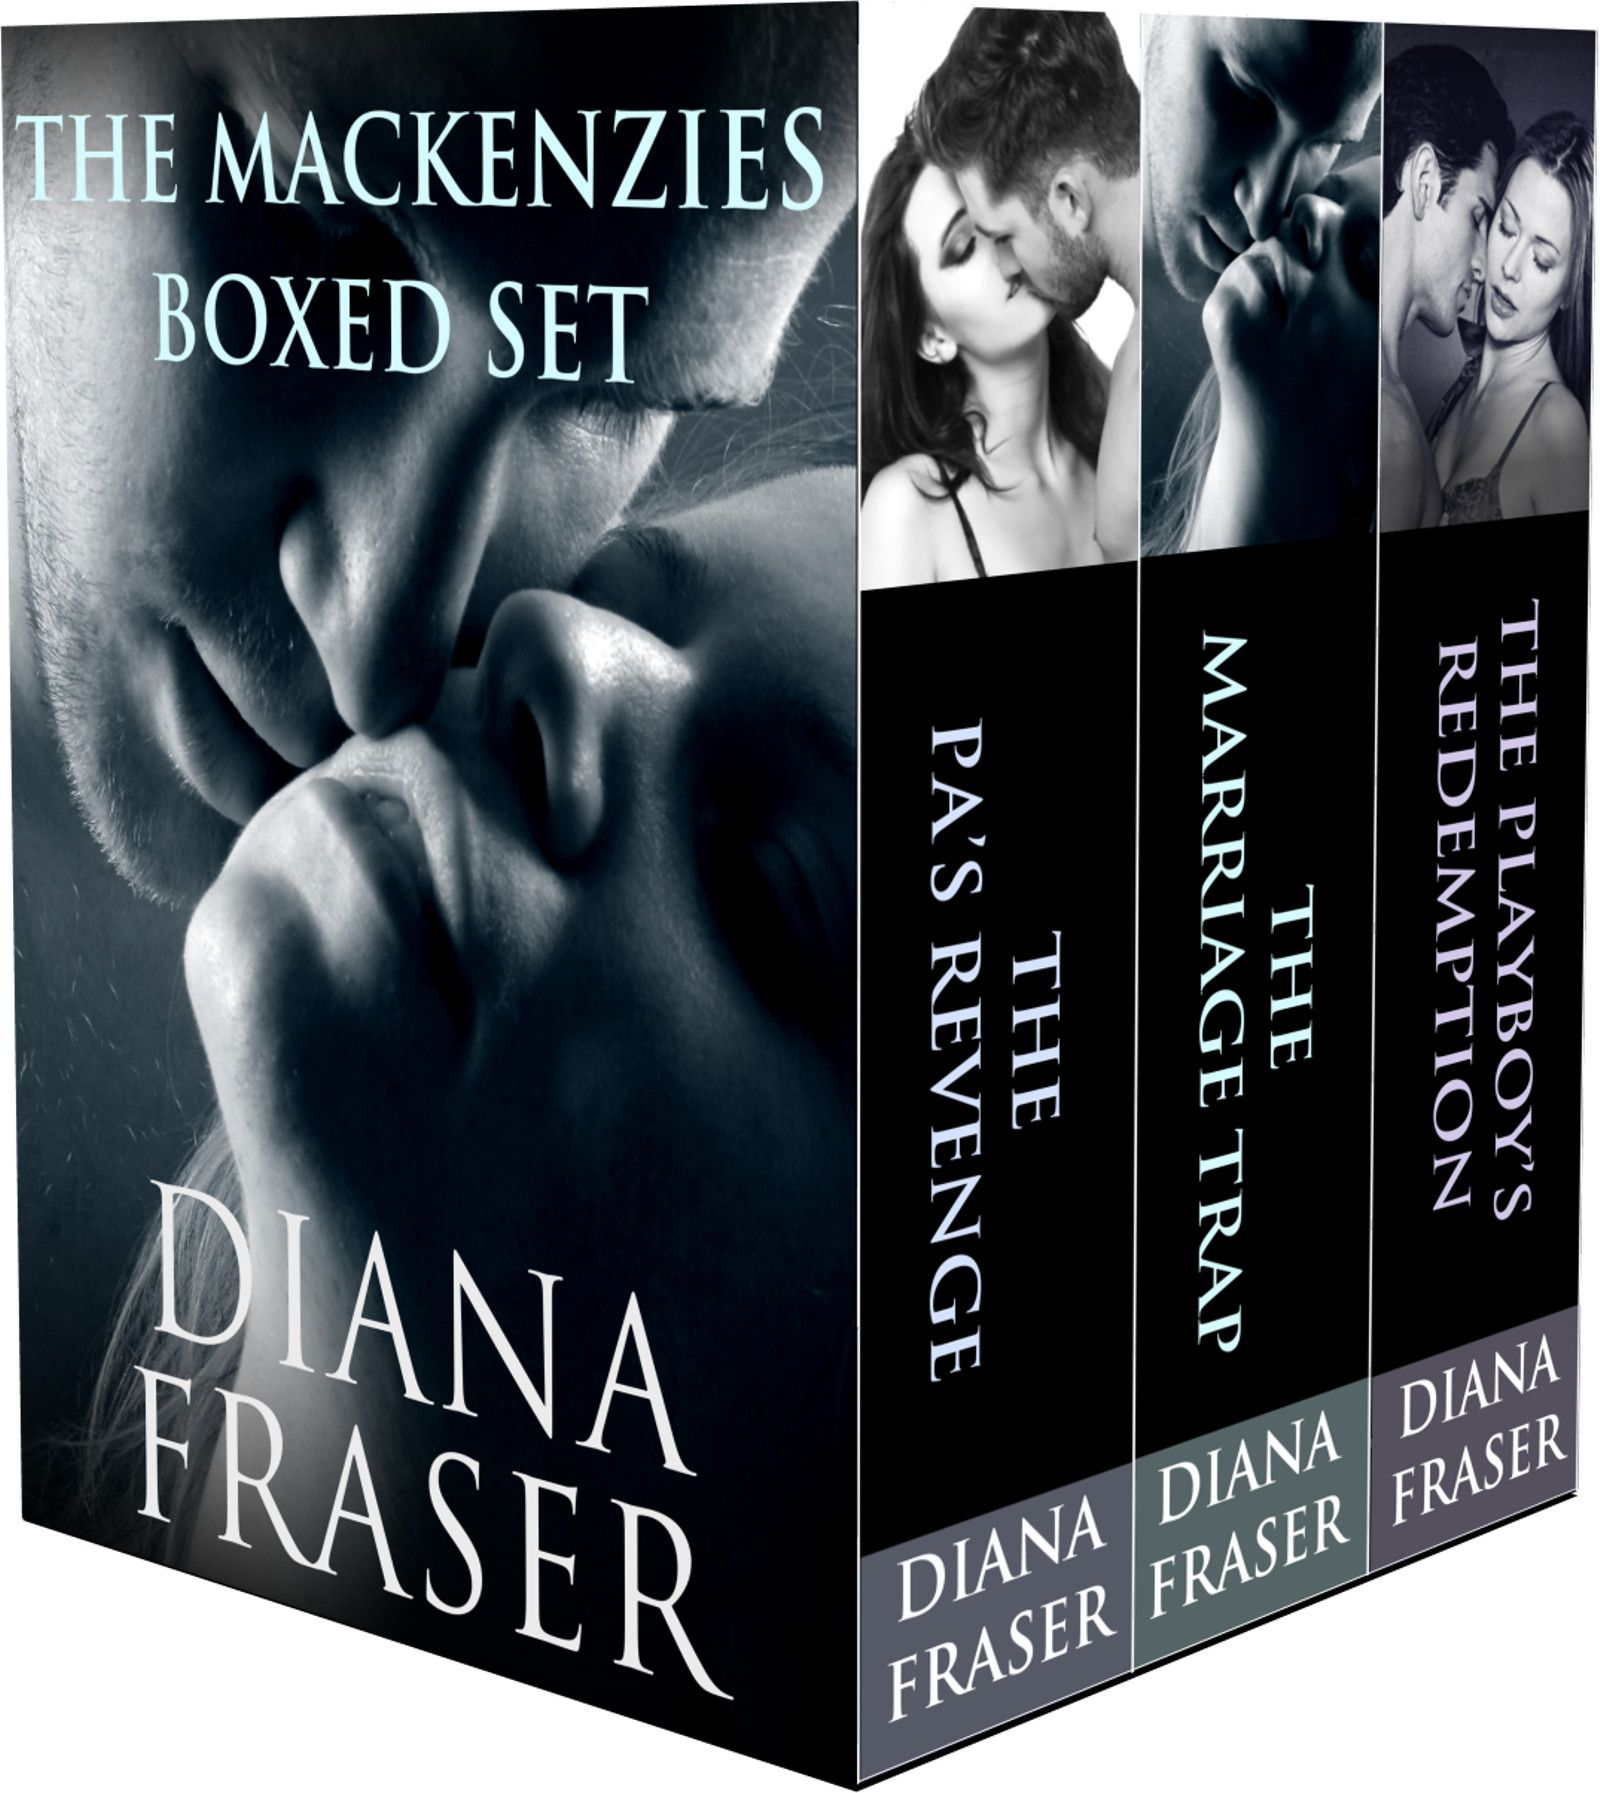 The Mackenzies Boxed Set contains:  Book 1—The PA's Revenge—A passionate tale of revenge,  Book 2—The Marriage Trap—A marriage of convenience forces two people to face their worst fears, and  Book 3—The Playboy's Redemption—A reunion story that pulls at the heart strings